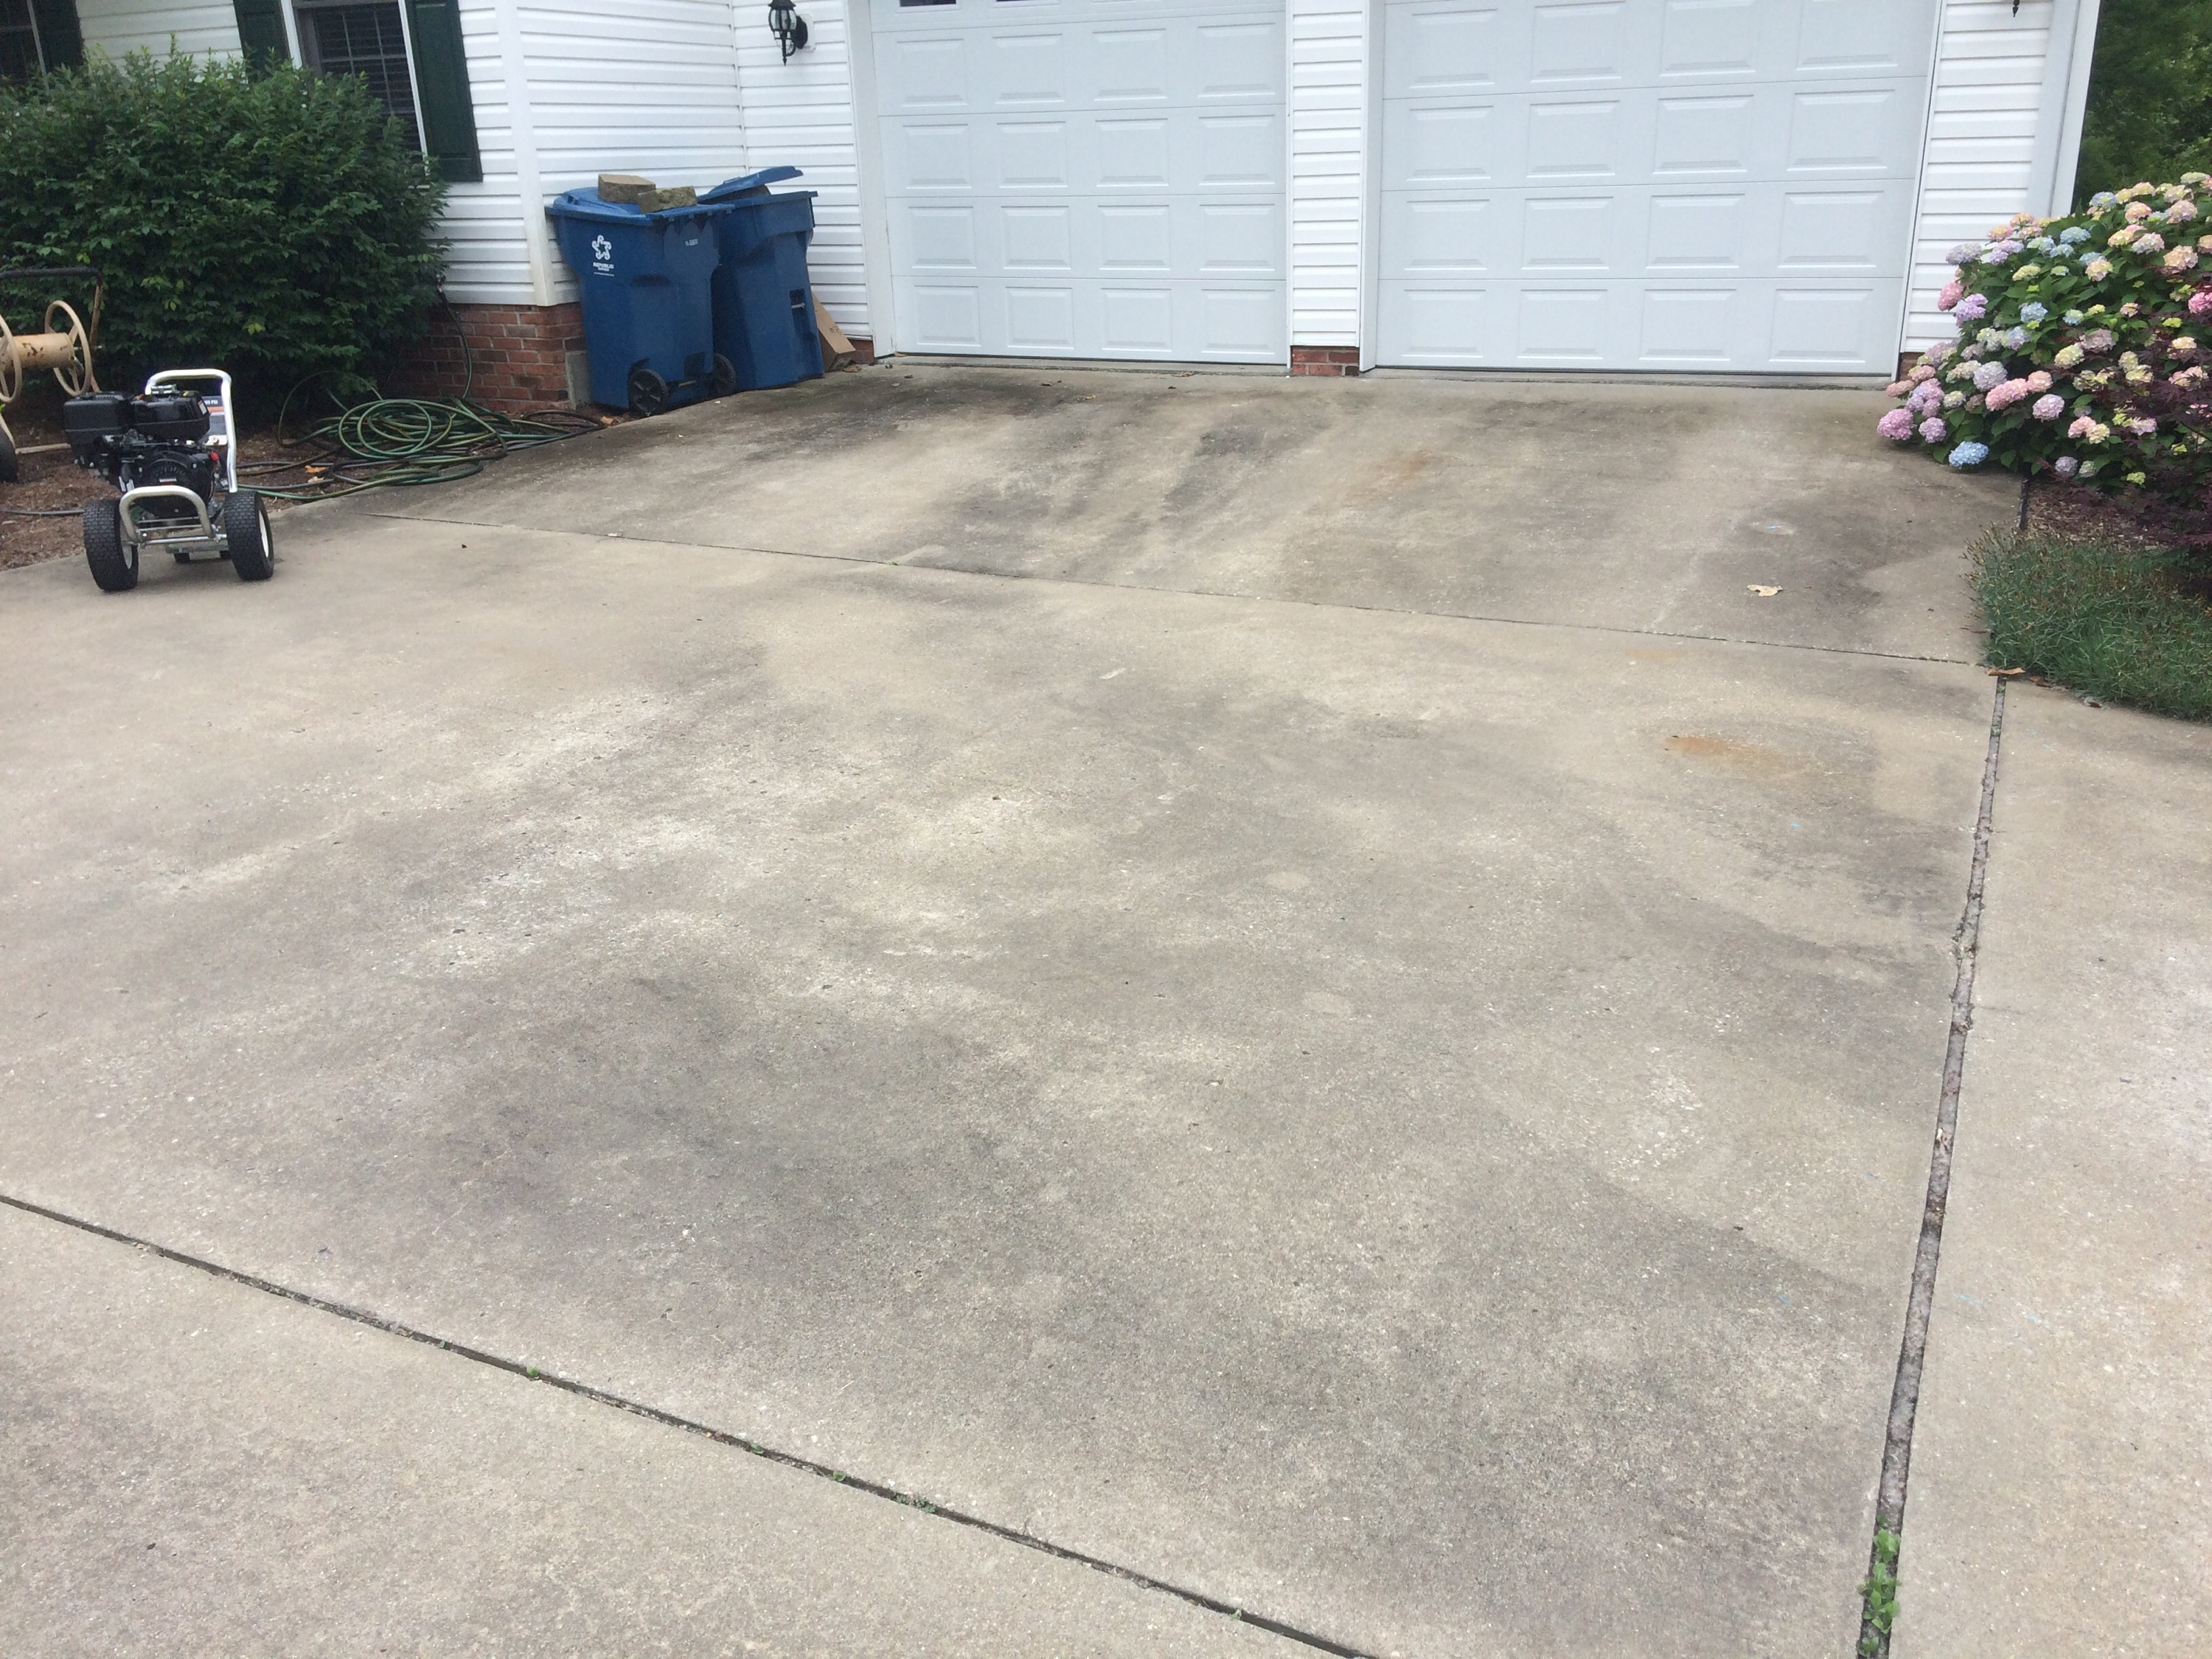 Concrete driveway cleaning in carterville il for What to clean concrete with